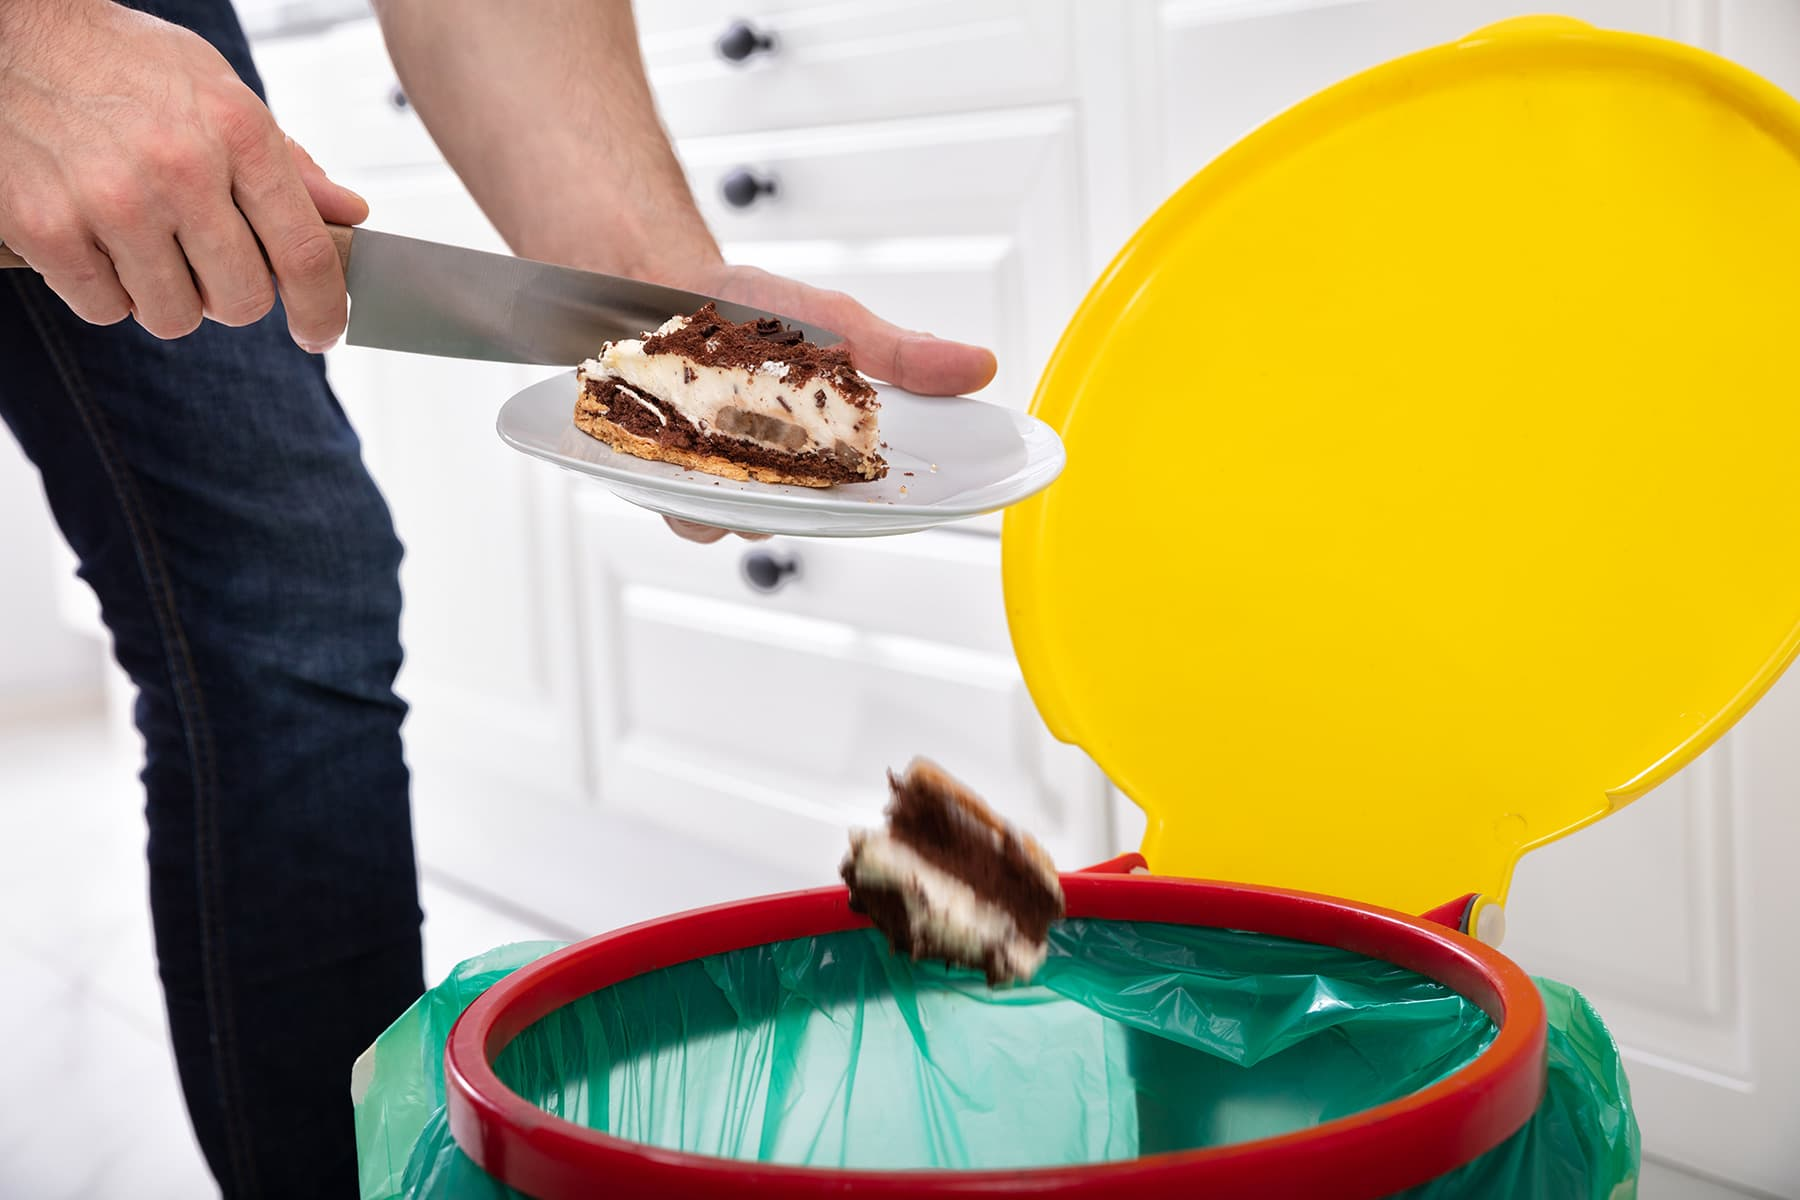 photo of disposing of cake in kitchen trash can